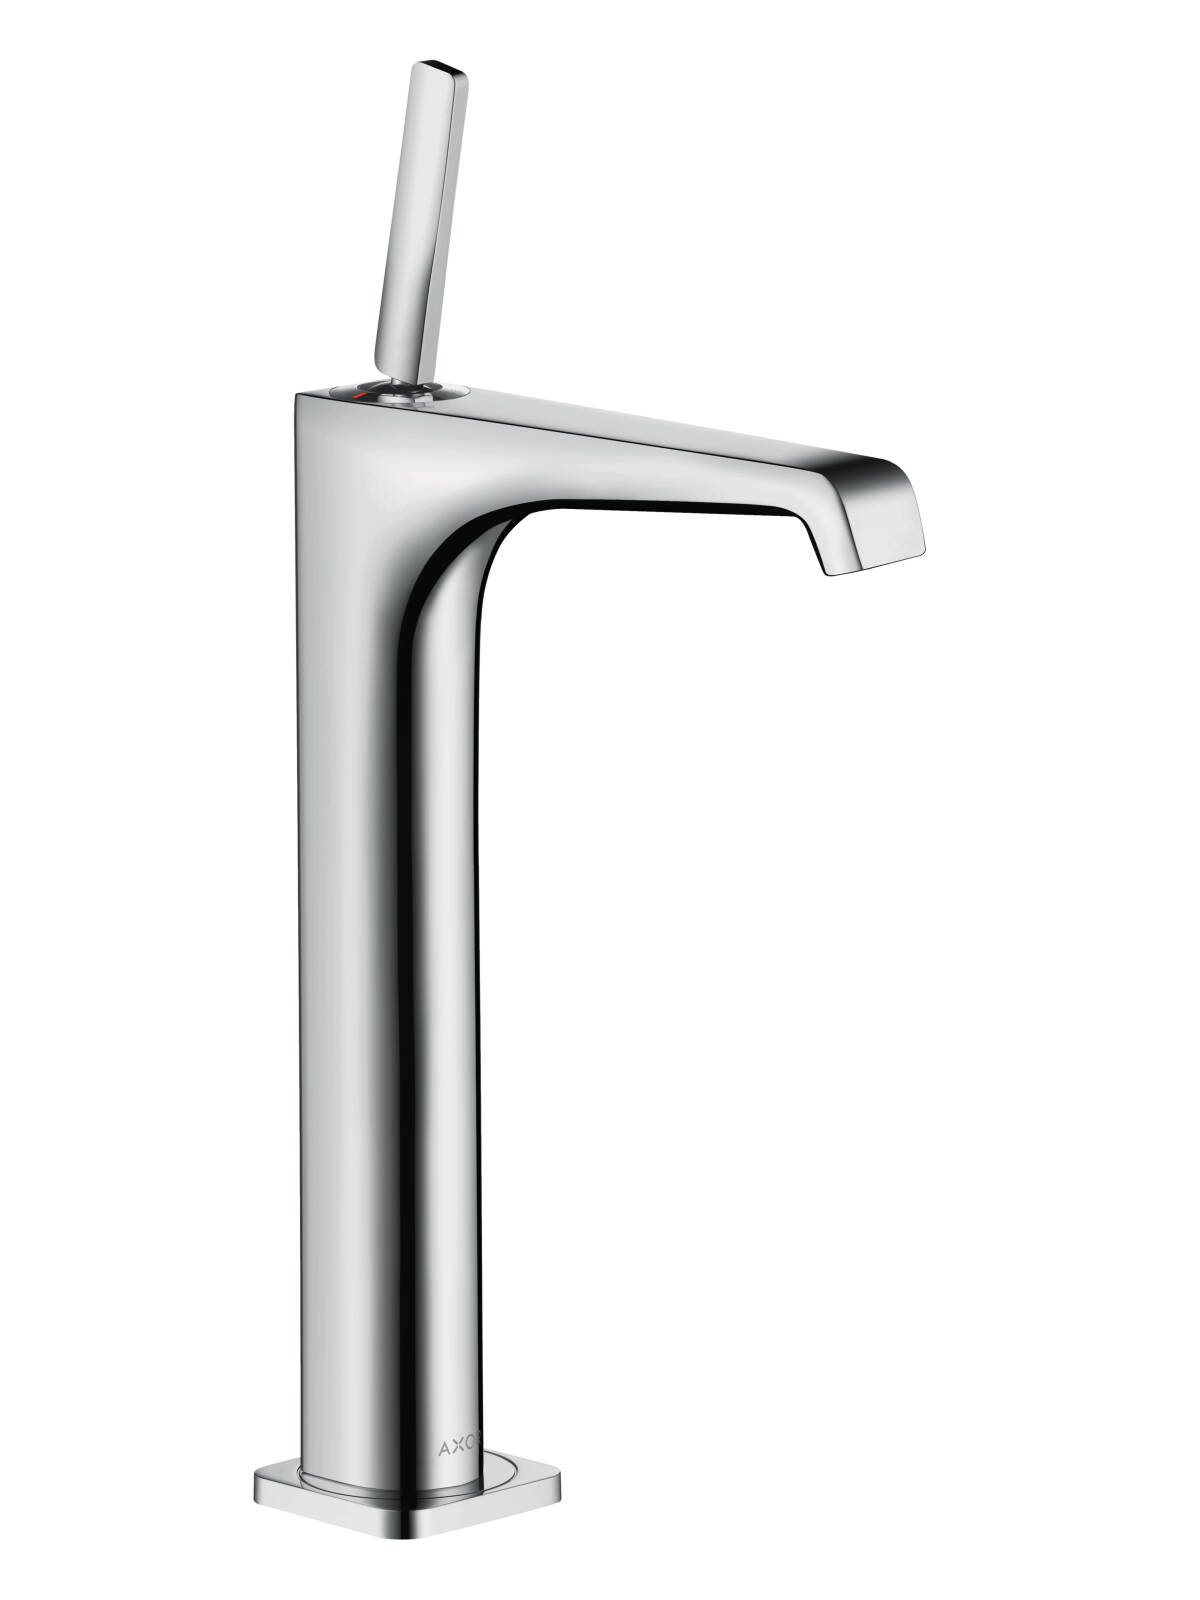 Single lever basin mixer 250 without pull-rod for wash bowls, Chrome, 36104000